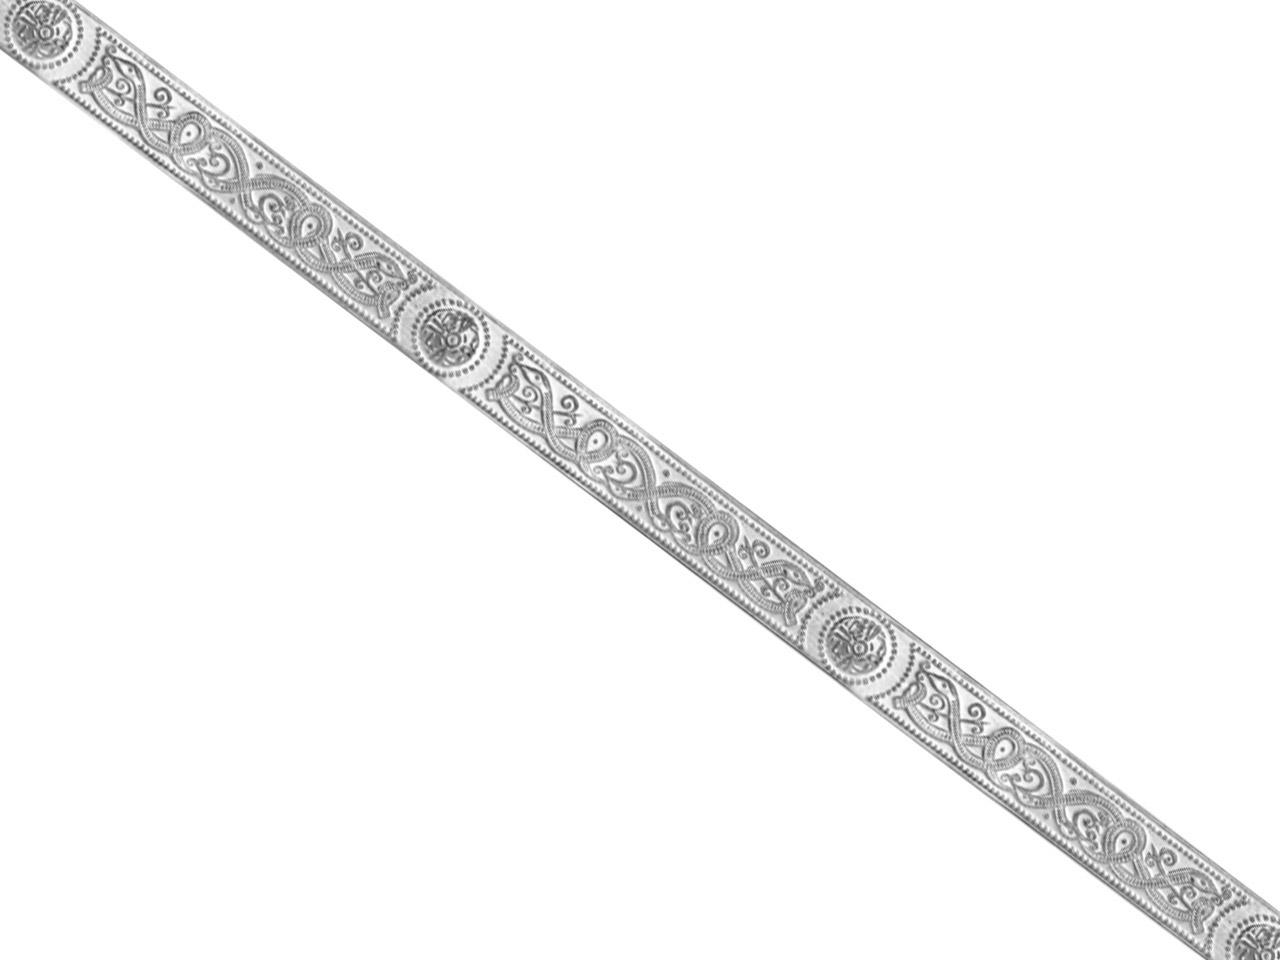 Sterling Silver Pattern Wire 3394  128g/mtr Half Hard, 1.3mm X 9.5mm